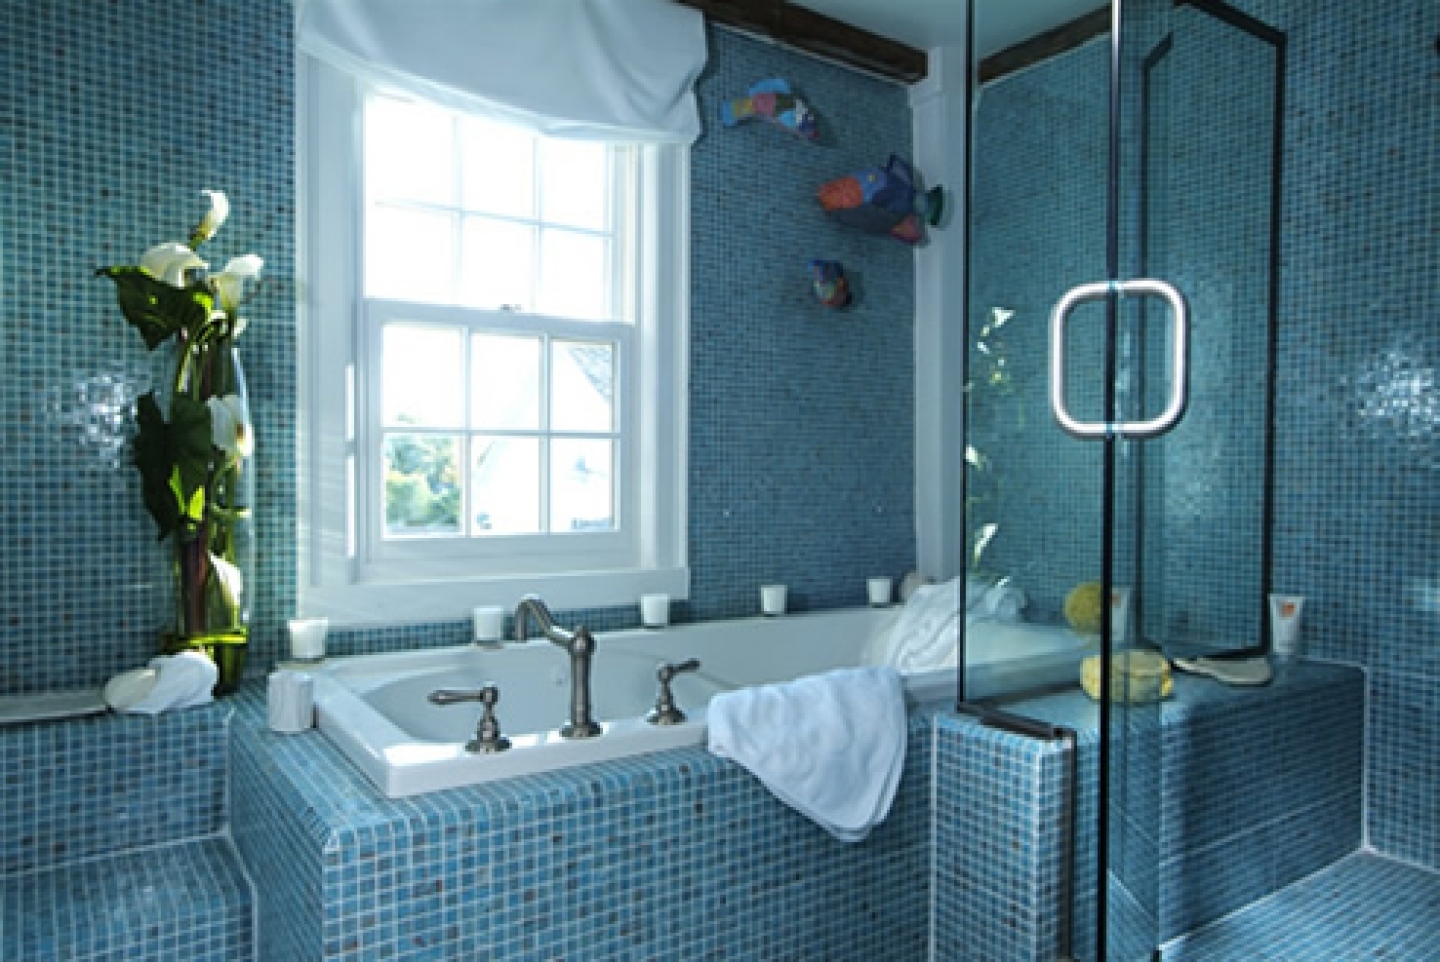 40 vintage blue bathroom tiles ideas and pictures - Bathroom shower ideas ...